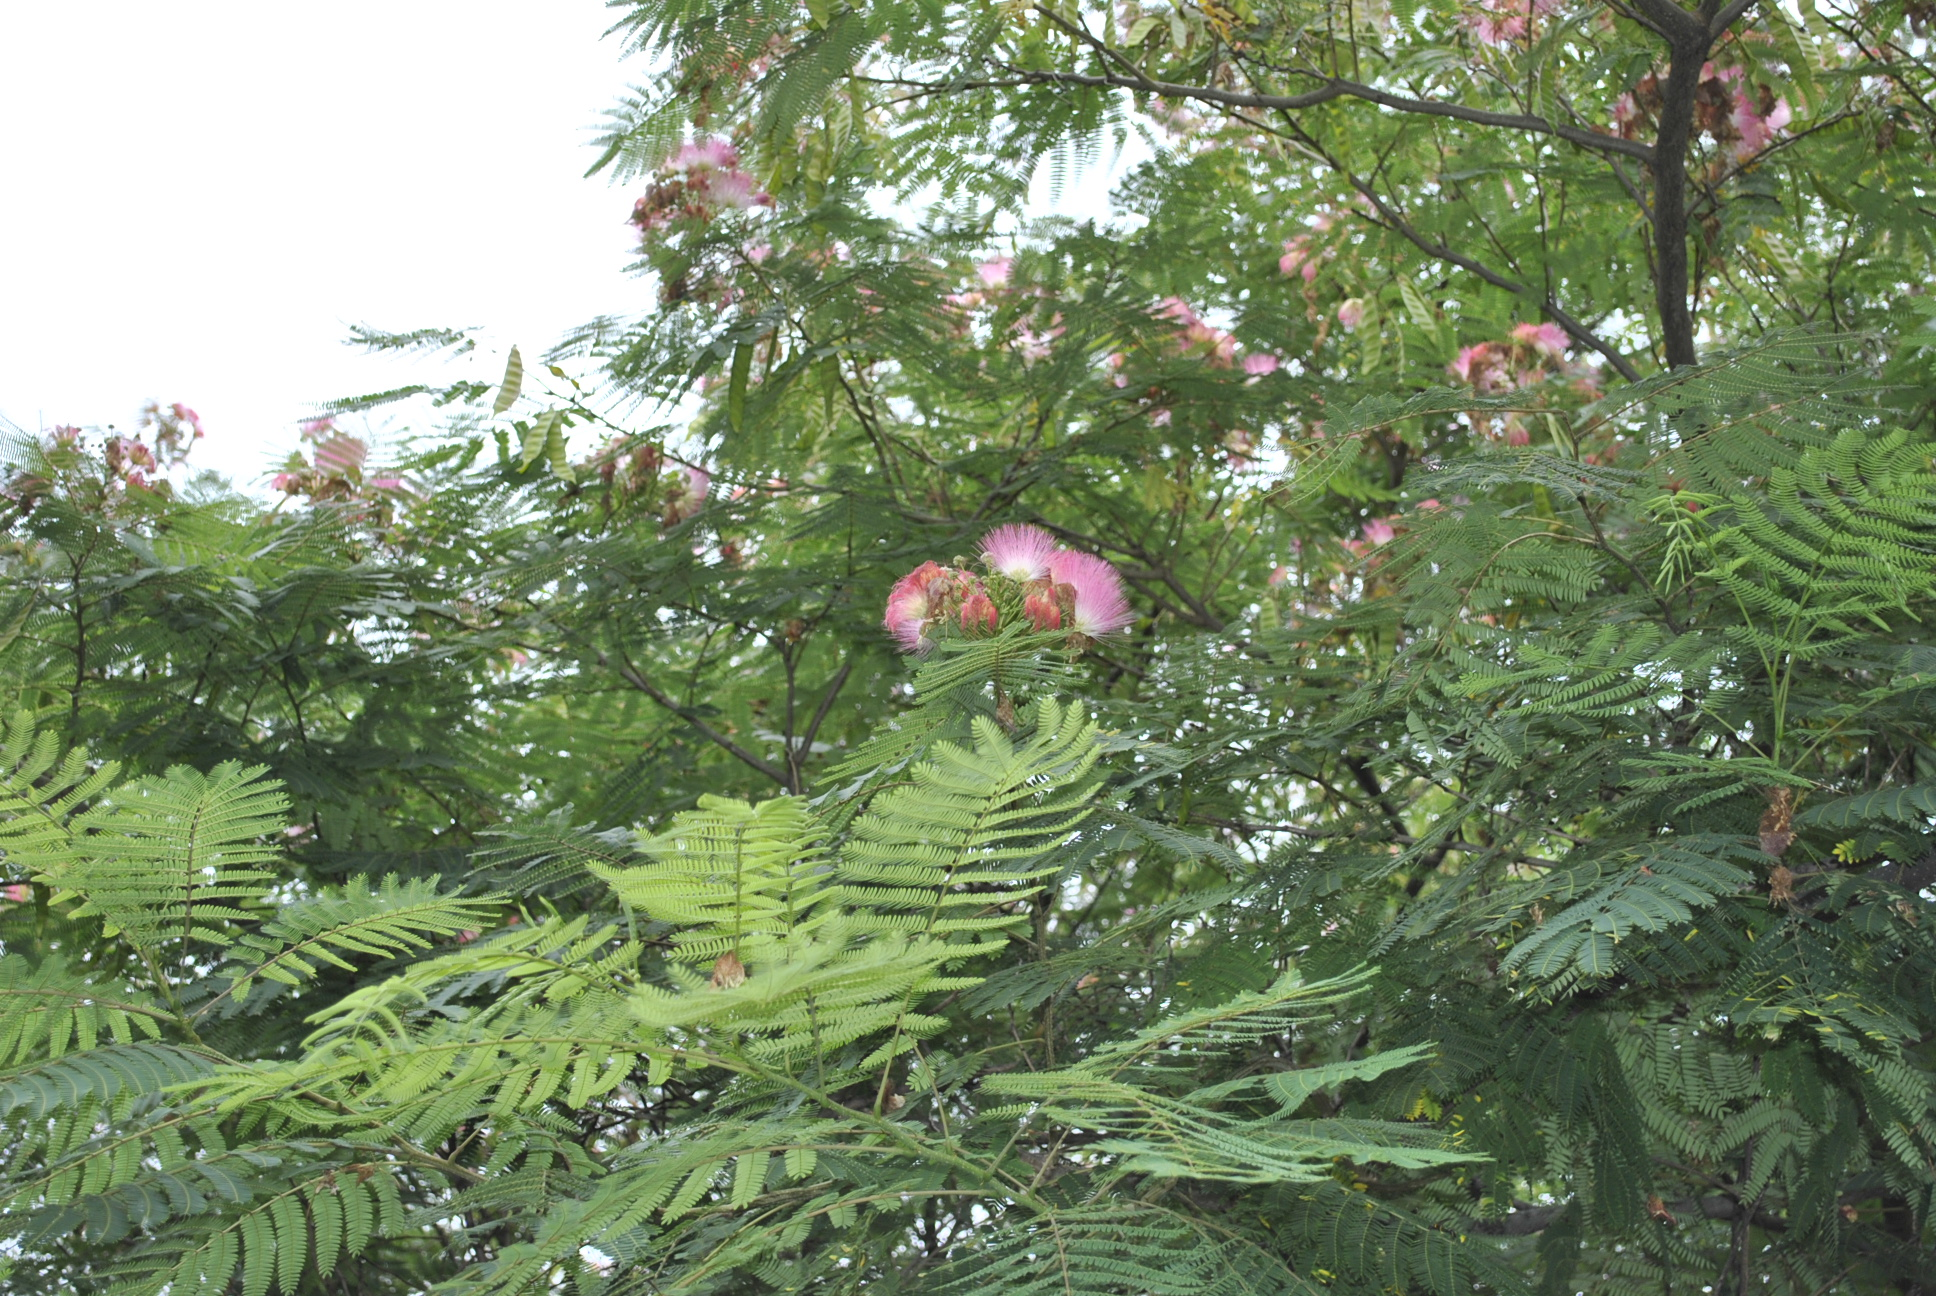 Mimosa Flowers & Leaves